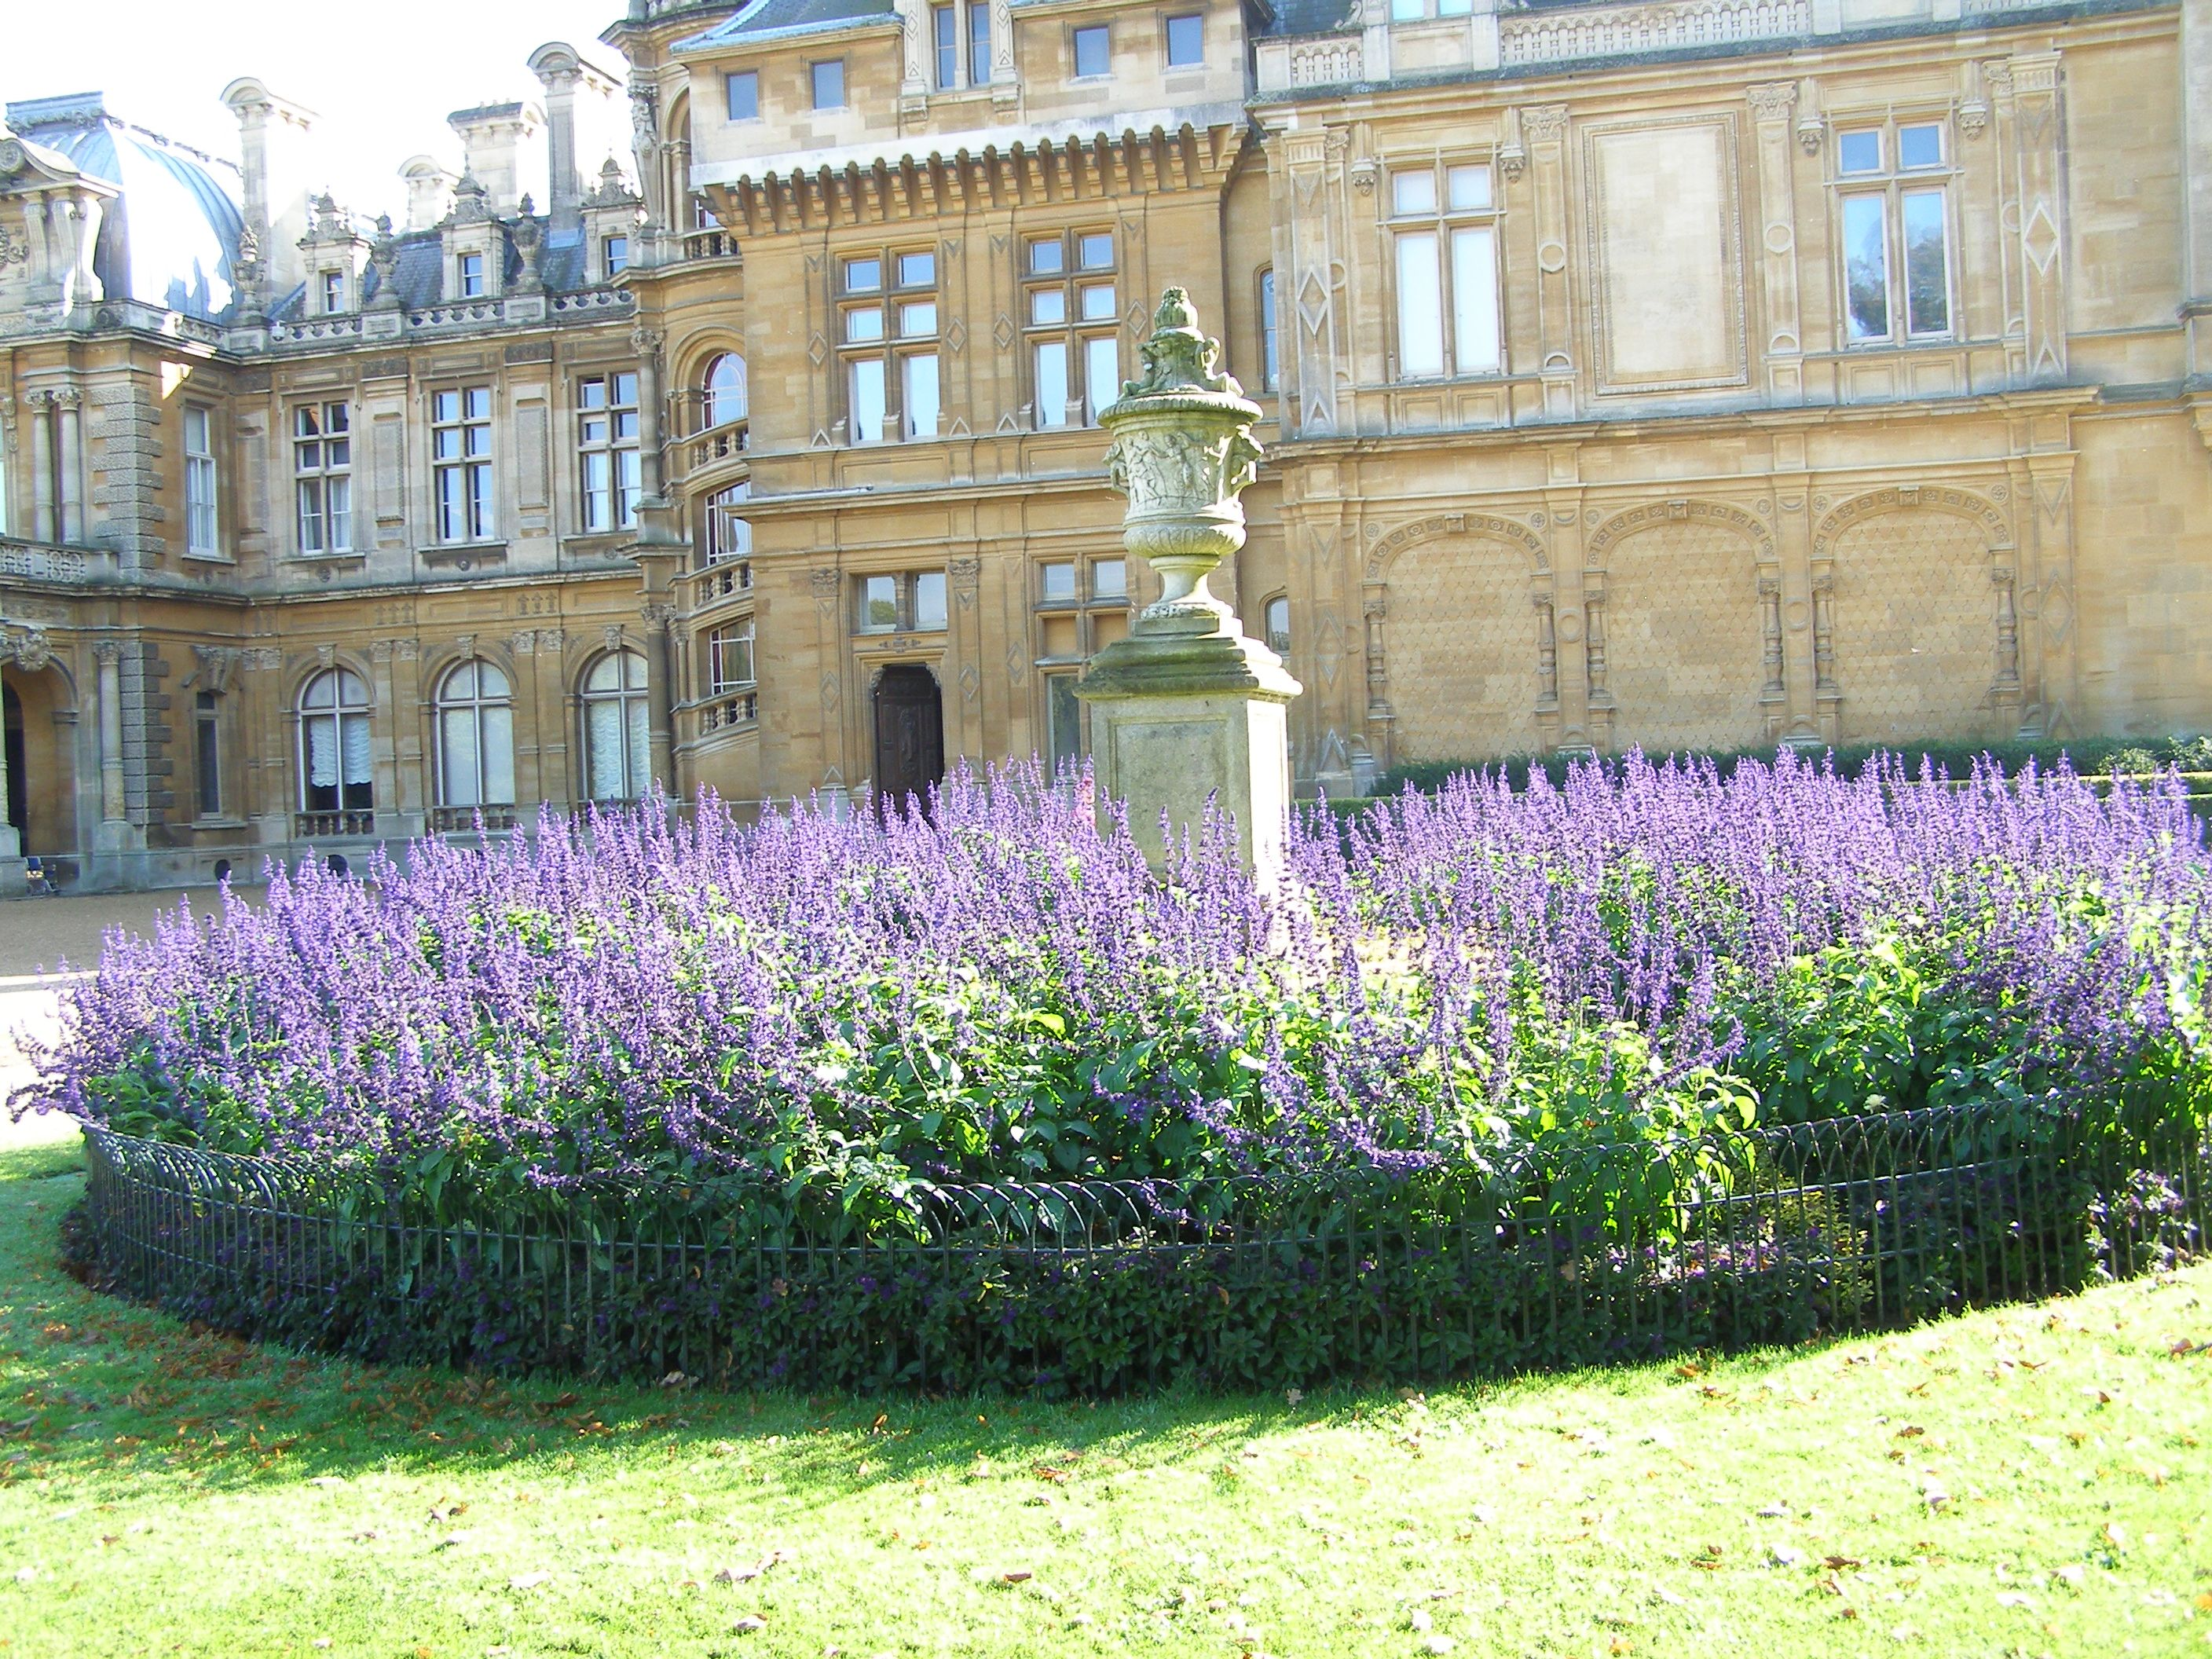 Waddesdon Manor Garden Some Features Of Victorian Gardens Flower Beds Shaped Potted Plants Stat Victorian Gardens Townhouse Garden Manor Garden